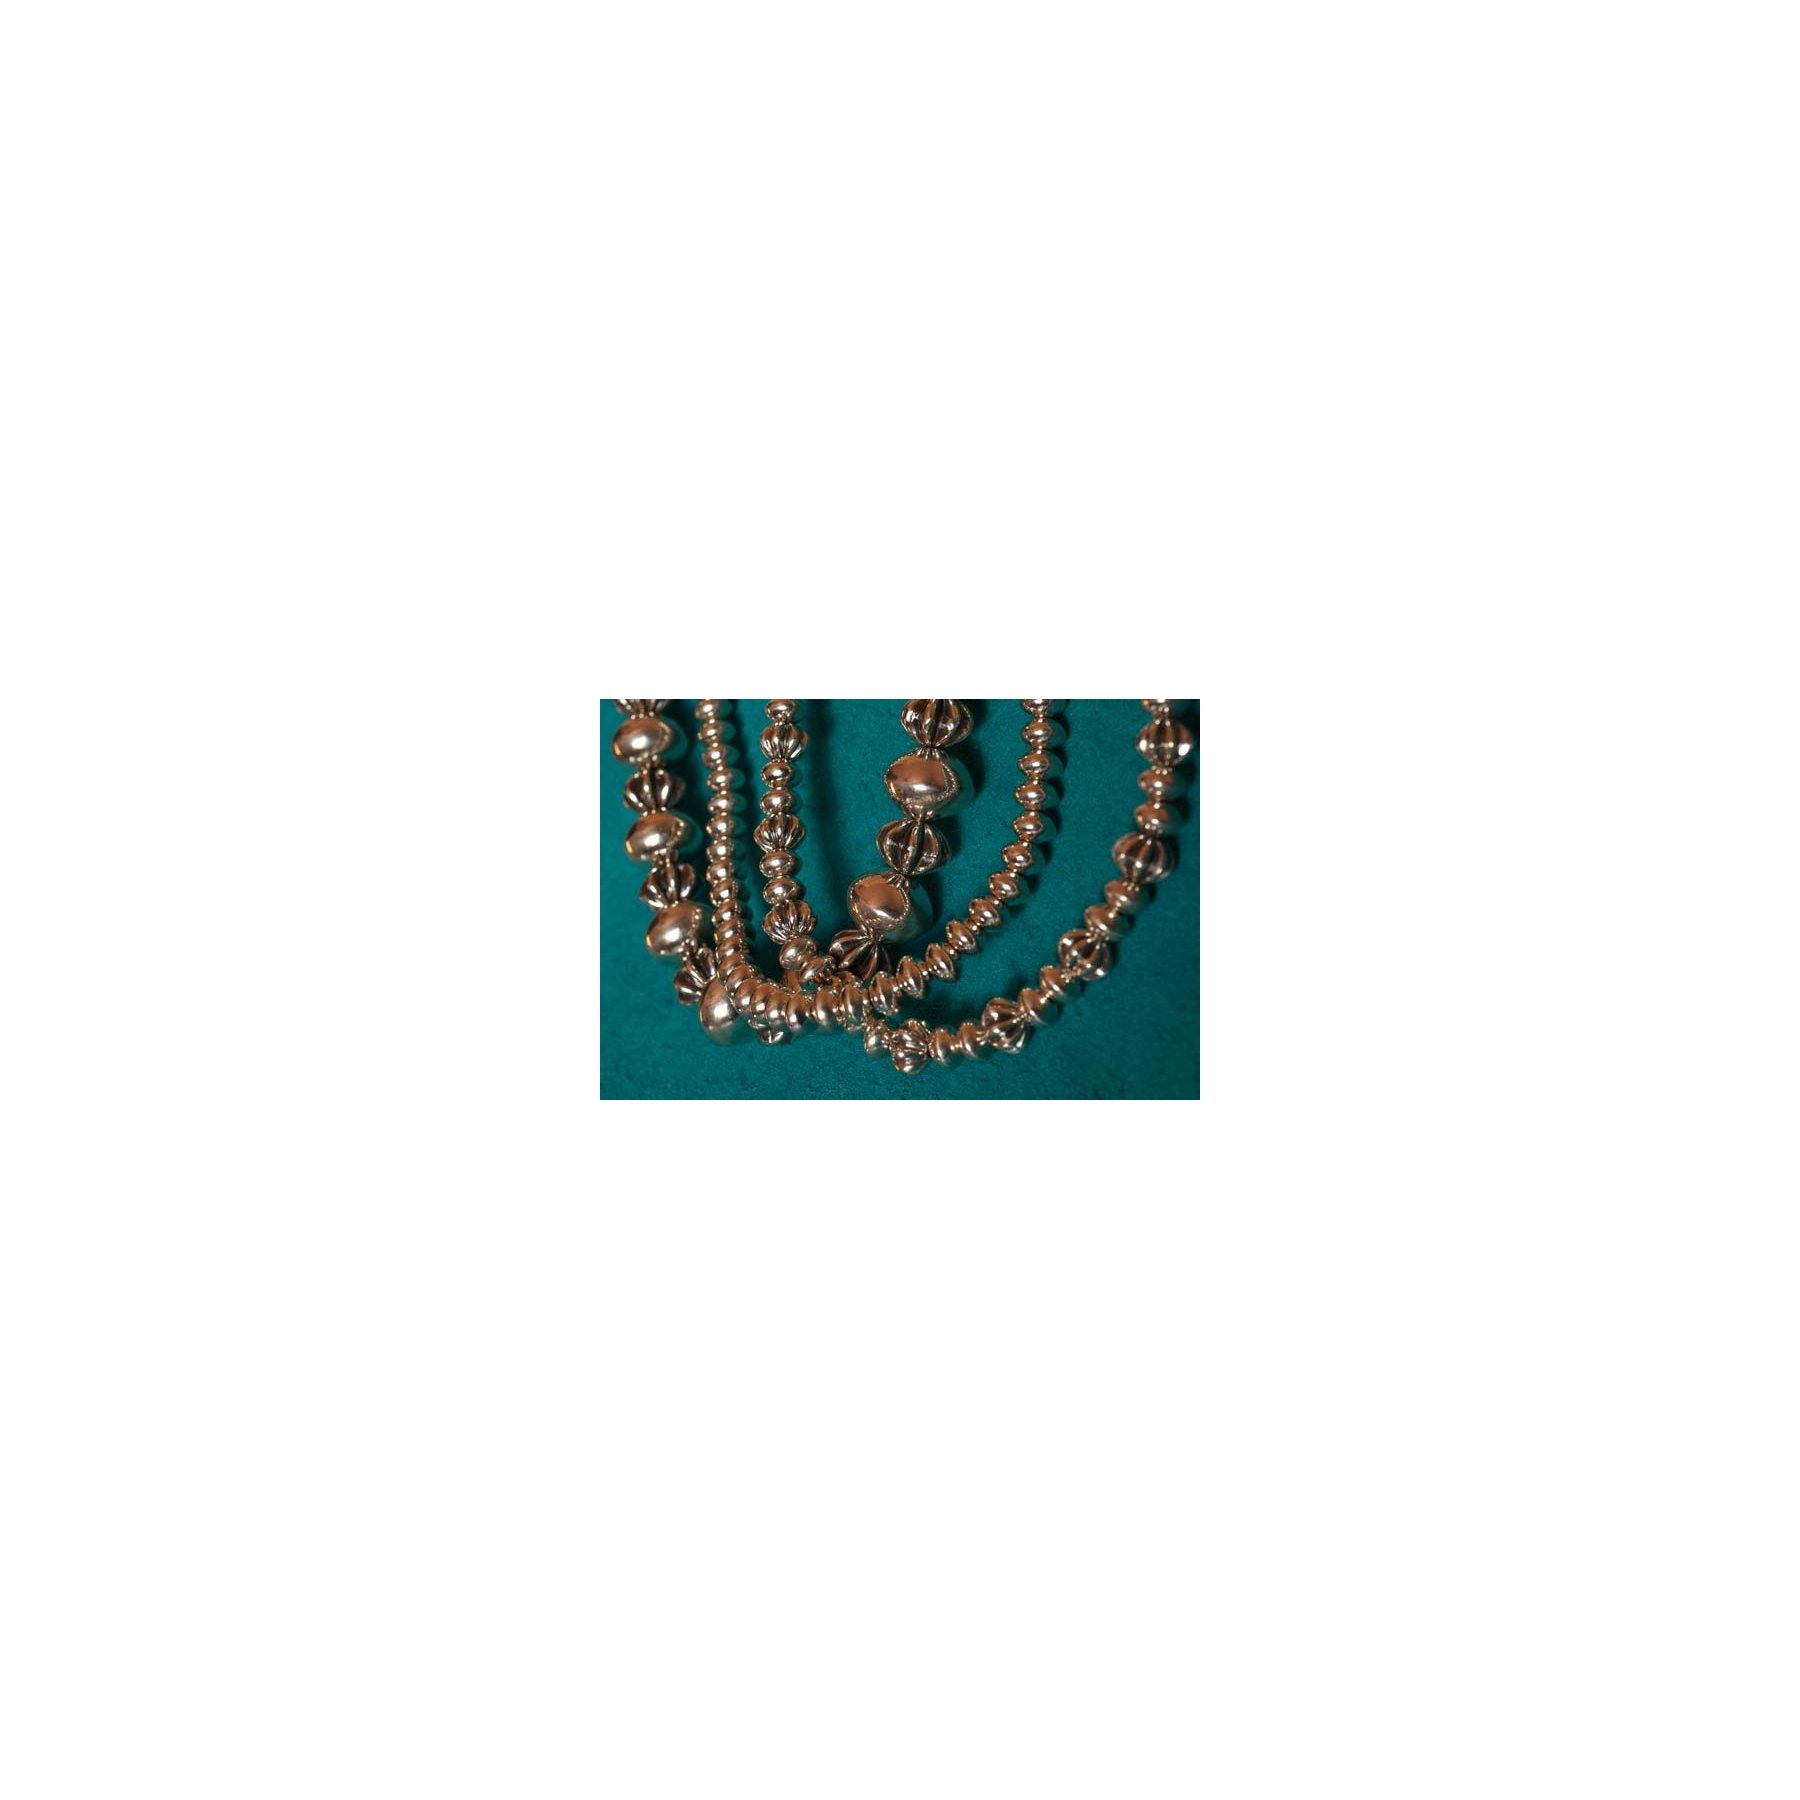 jewelry indian women in collier american plastron necklaces necklace chain bib maxi chunky statement hippie item native from ethnic beaded